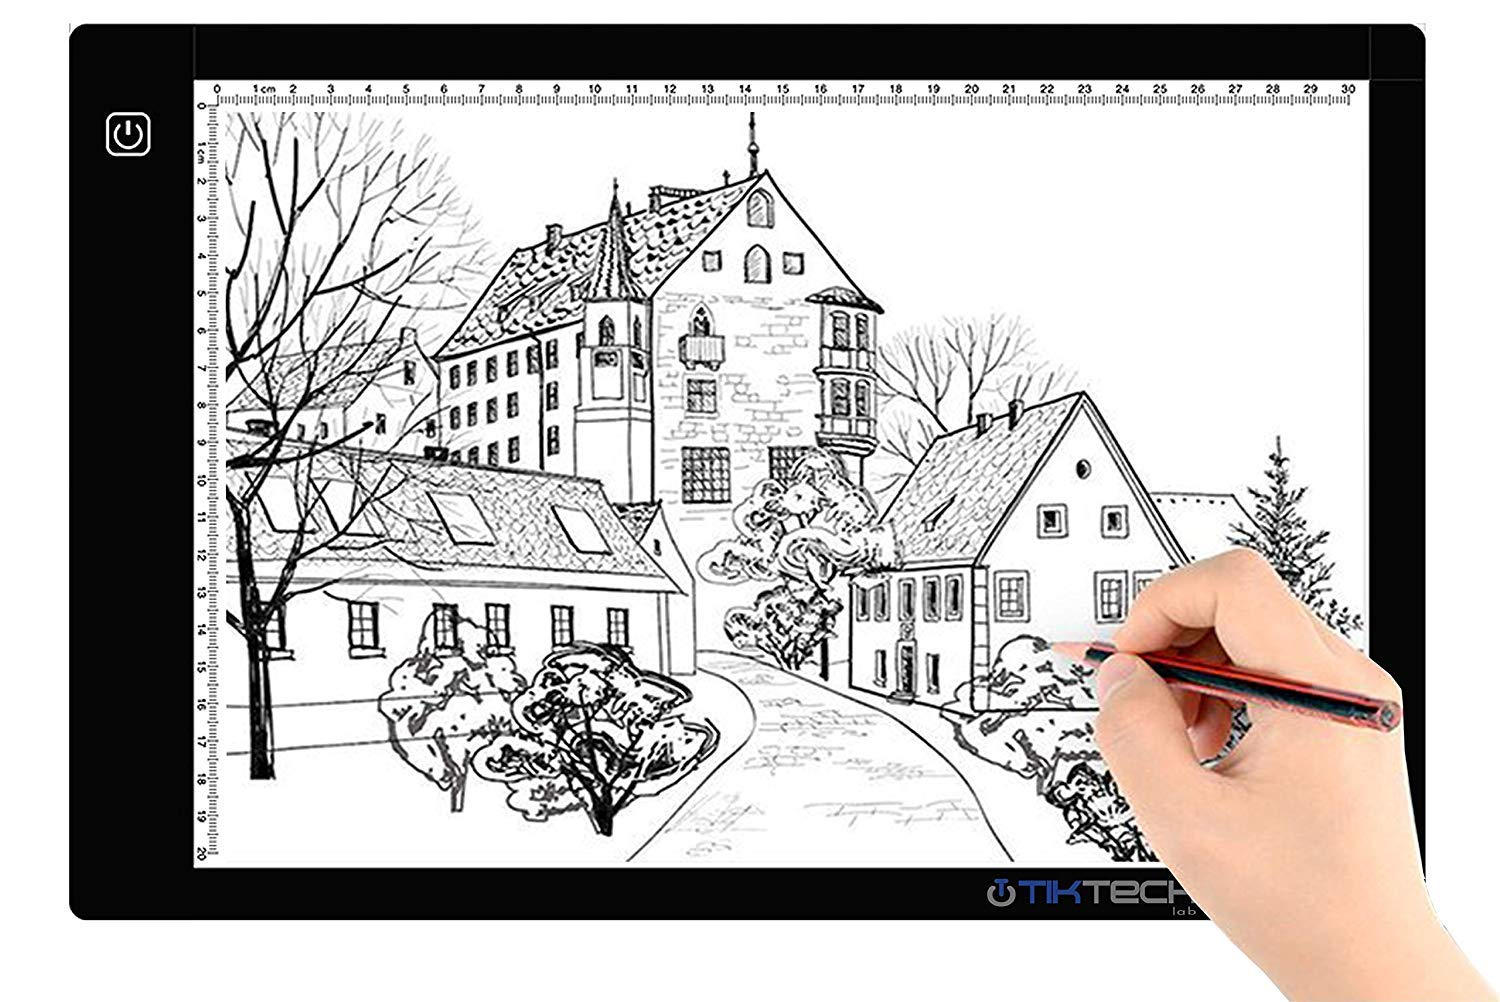 Tikteck A4 Ultra-thin Portable LED Light Box Tracer USB Power Cable Dimmable Brightness LED Artcraft Tracing Light Box Light Pad for Artists Drawing Sketching Animation Stencilling X-rayViewing by tiktecklab